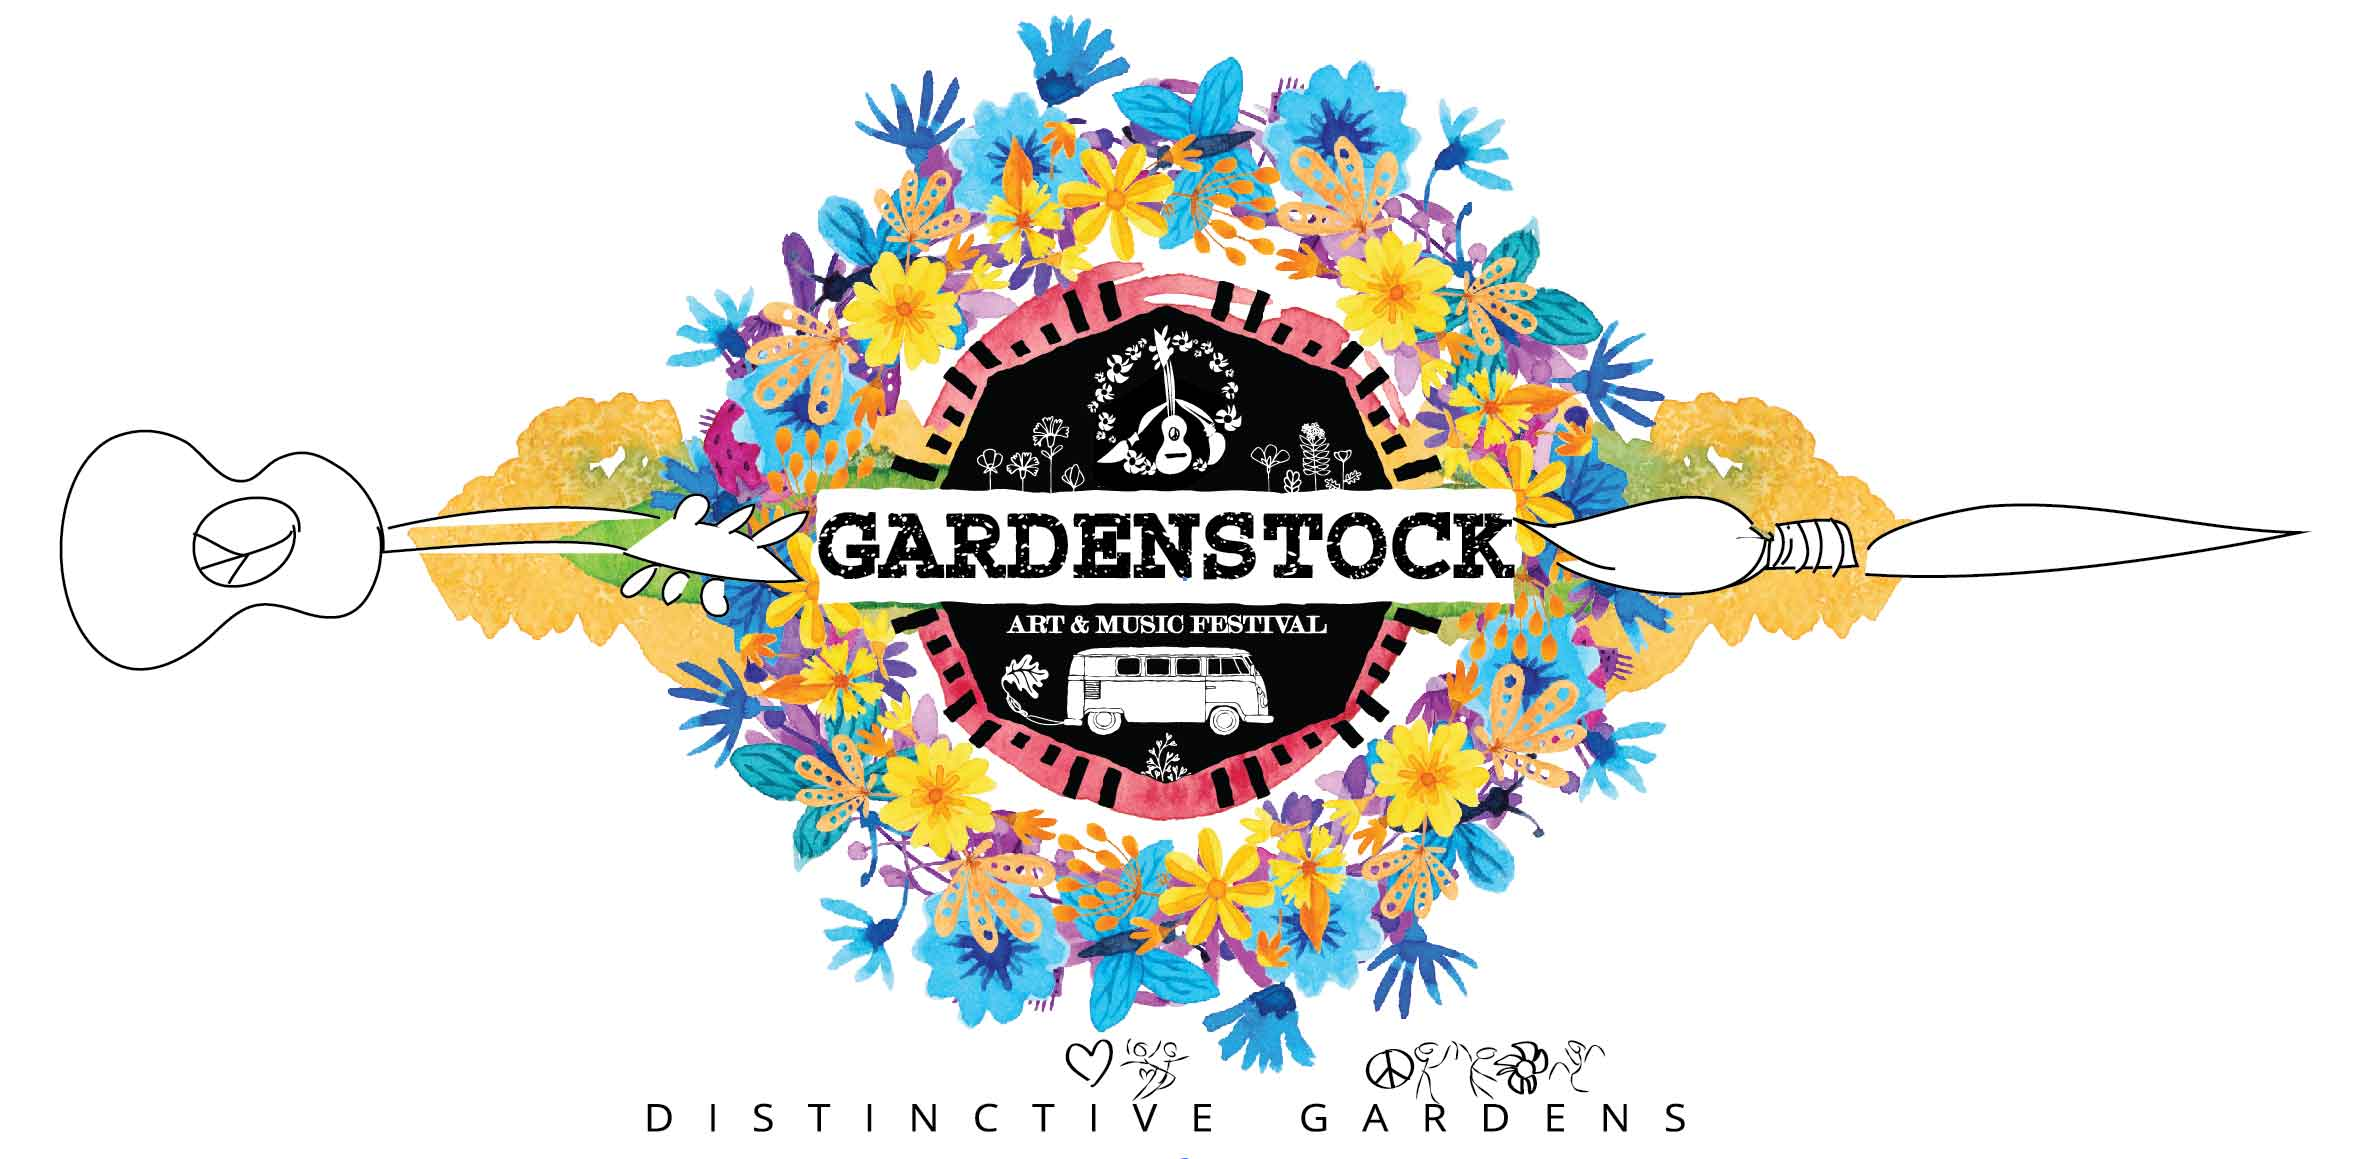 2018 Gardenstock Art & Music Festival News!